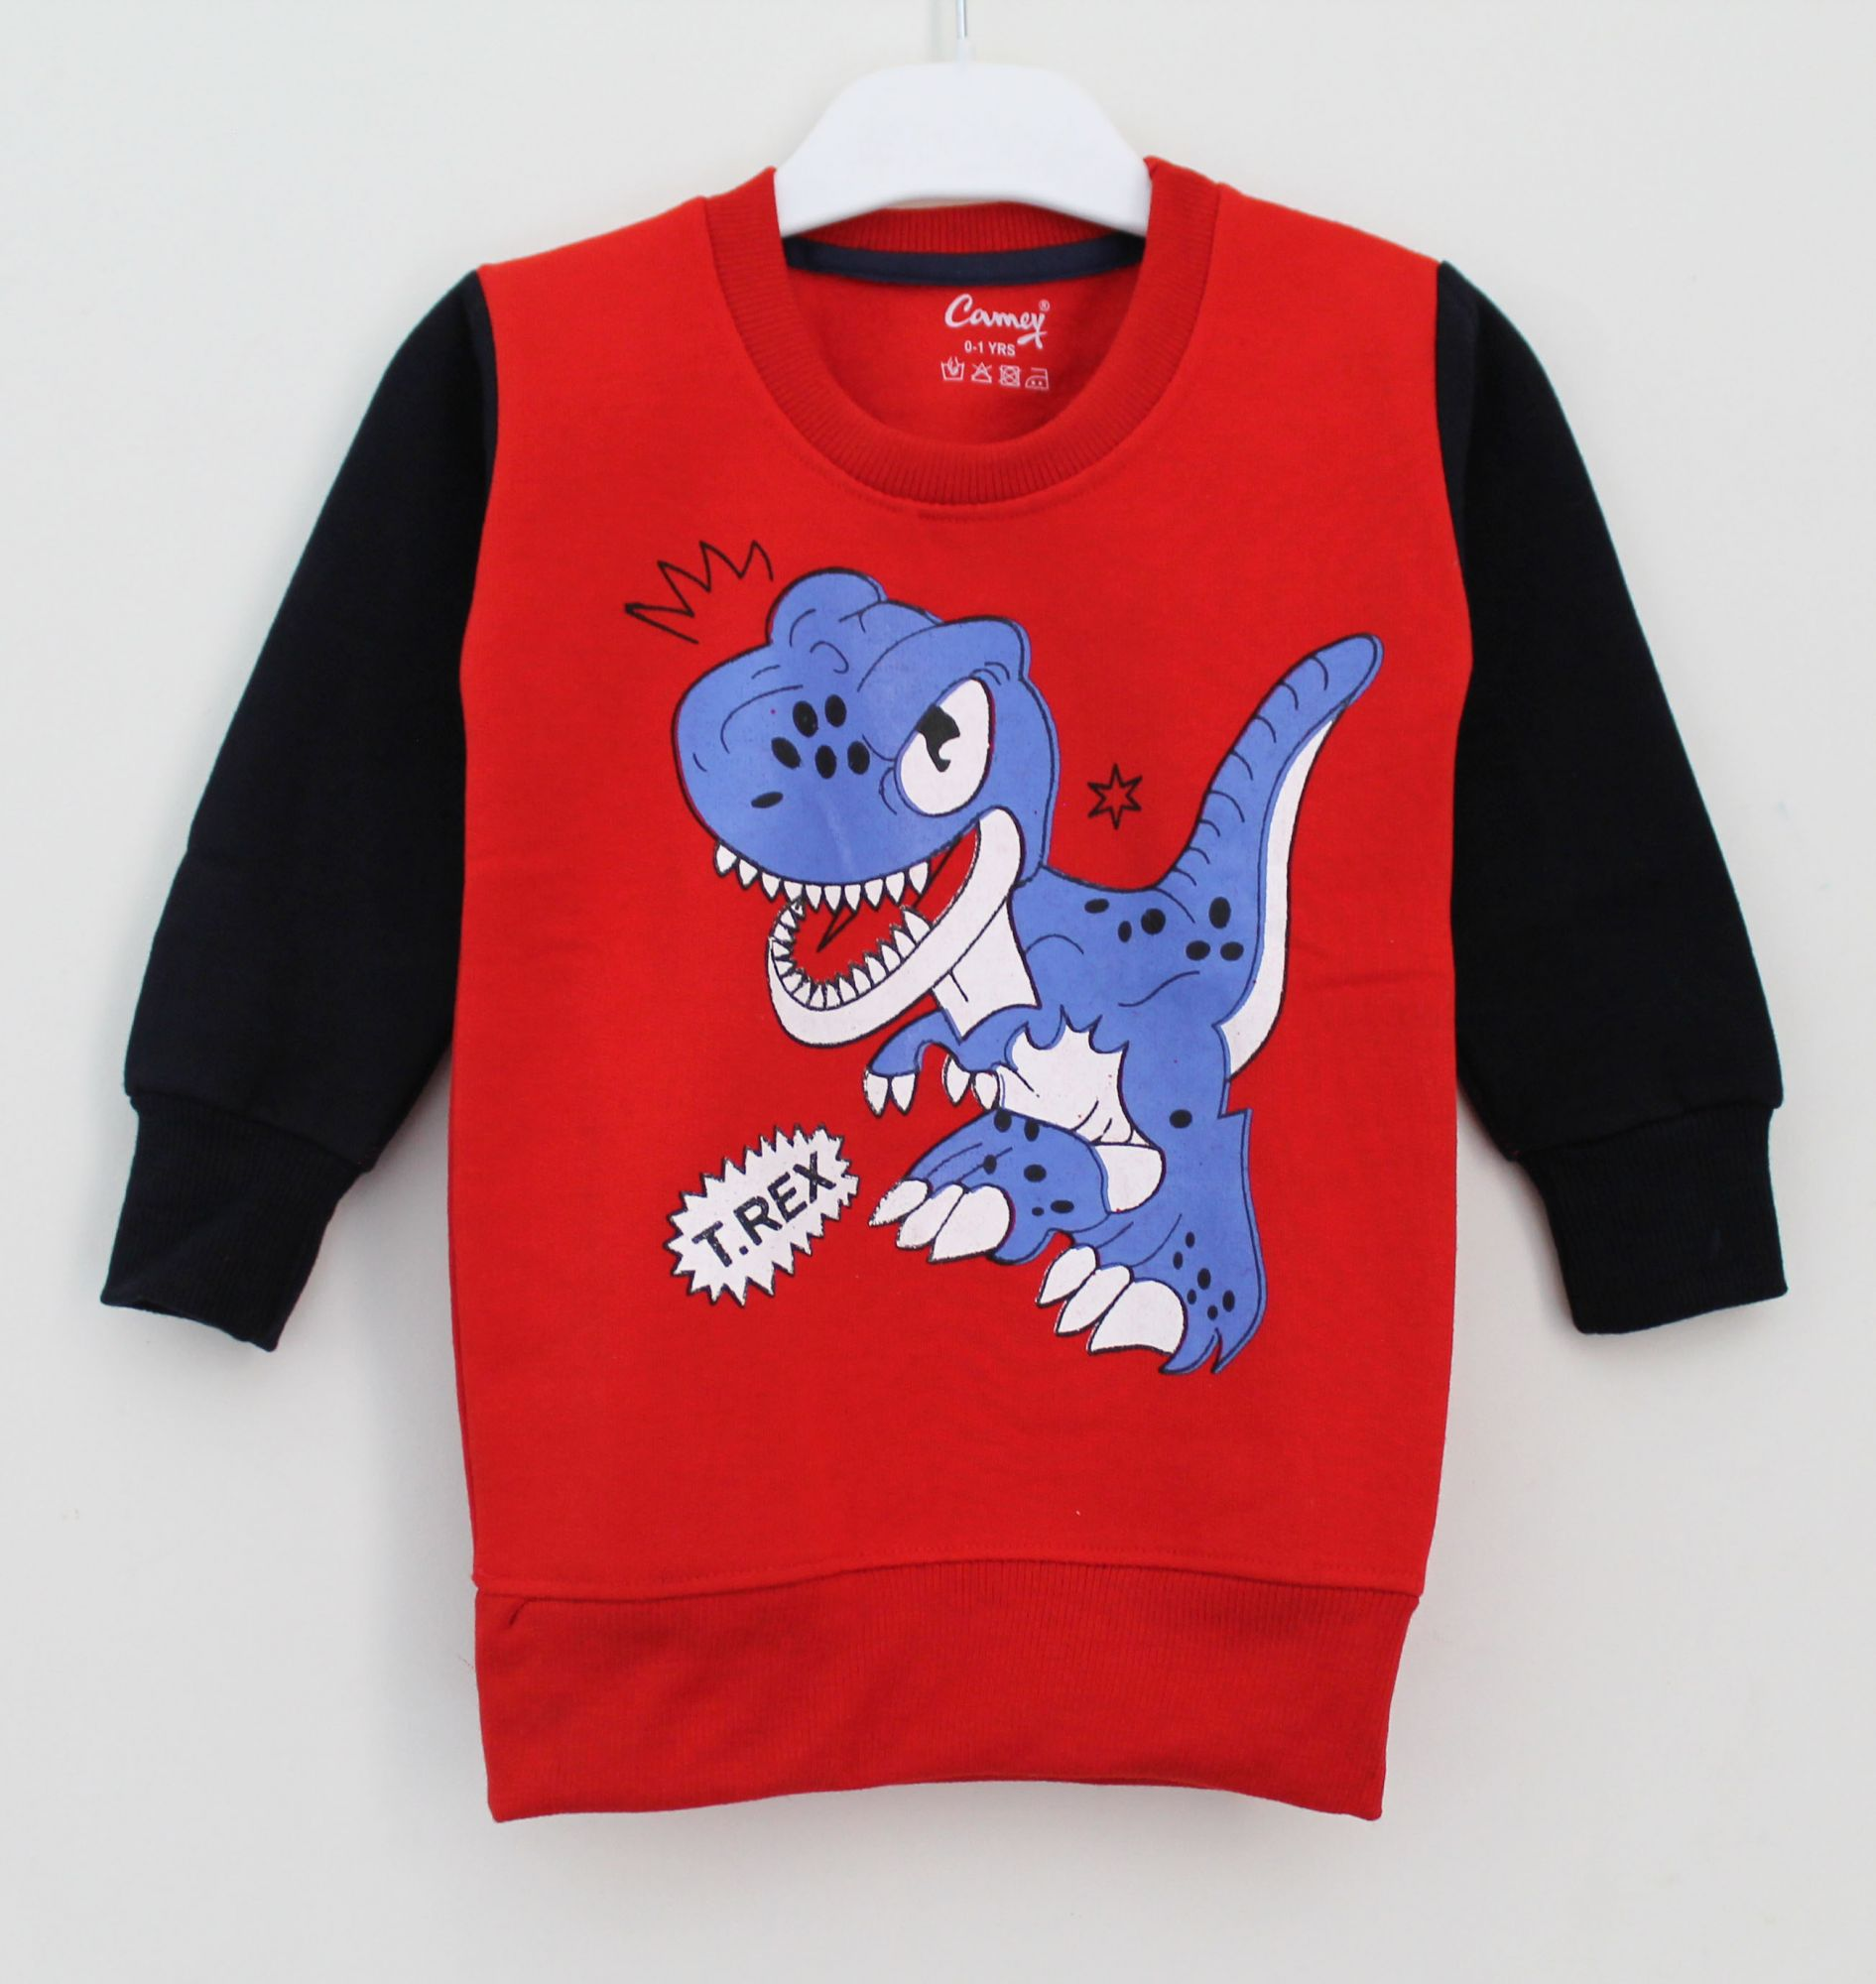 Dinasaur Sweatshirt for Kids